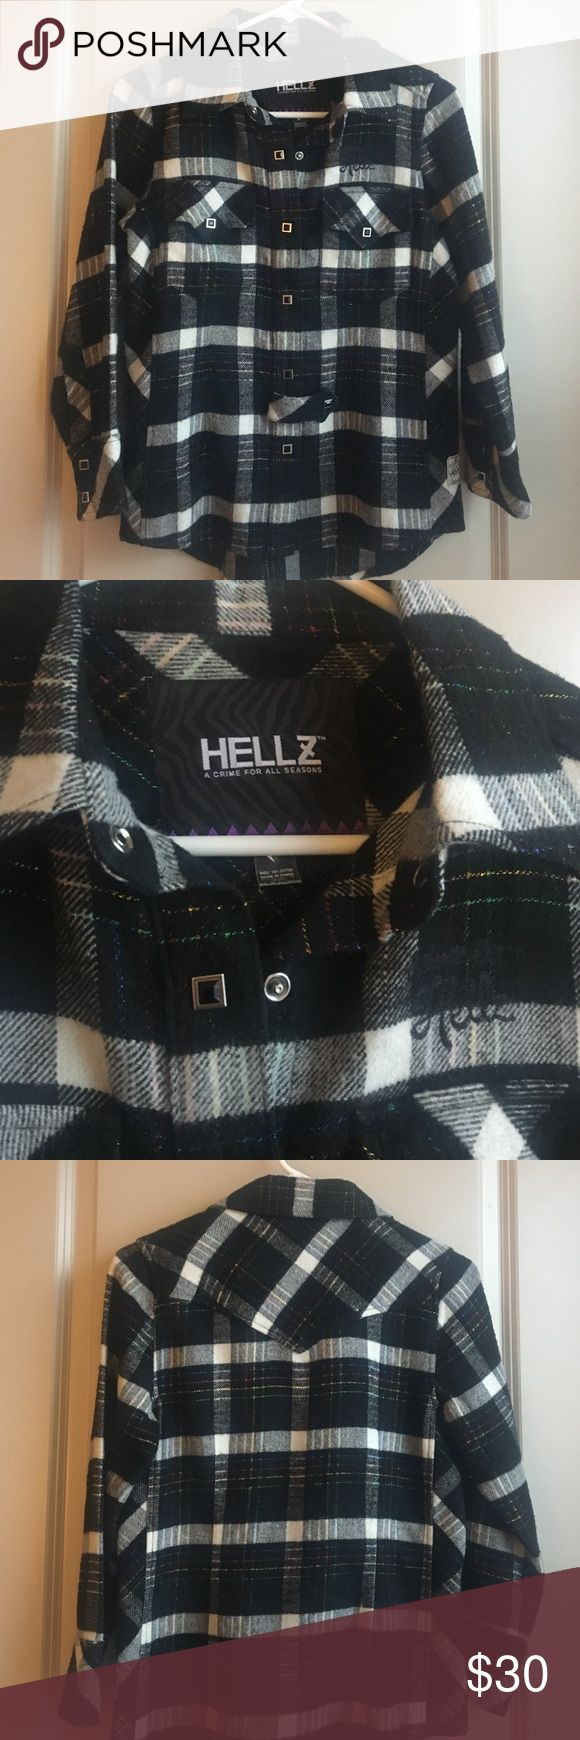 Hellz Bellz Black Flannel Black flannel by streetwear brand Hellz Bellz. 100% cotton, very warm. Unique snap buttons & blue, red, yellow & green detailing on flannel. Won't find anything like it! Aritzia Tops Button Down Shirts